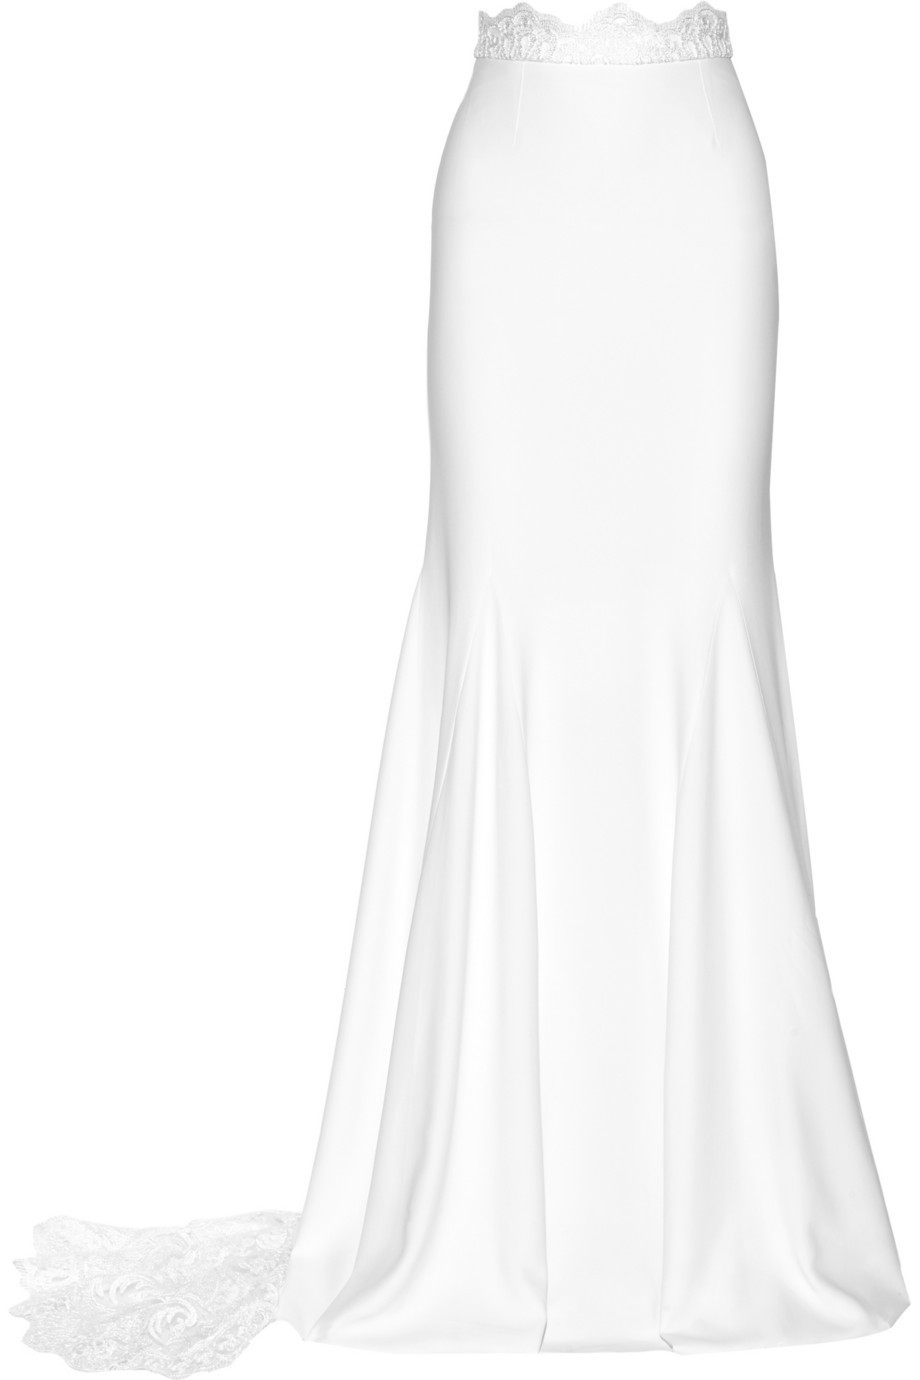 Rime Arodaky Pennington Lace-Paneled Crepe Maxi Skirt in white